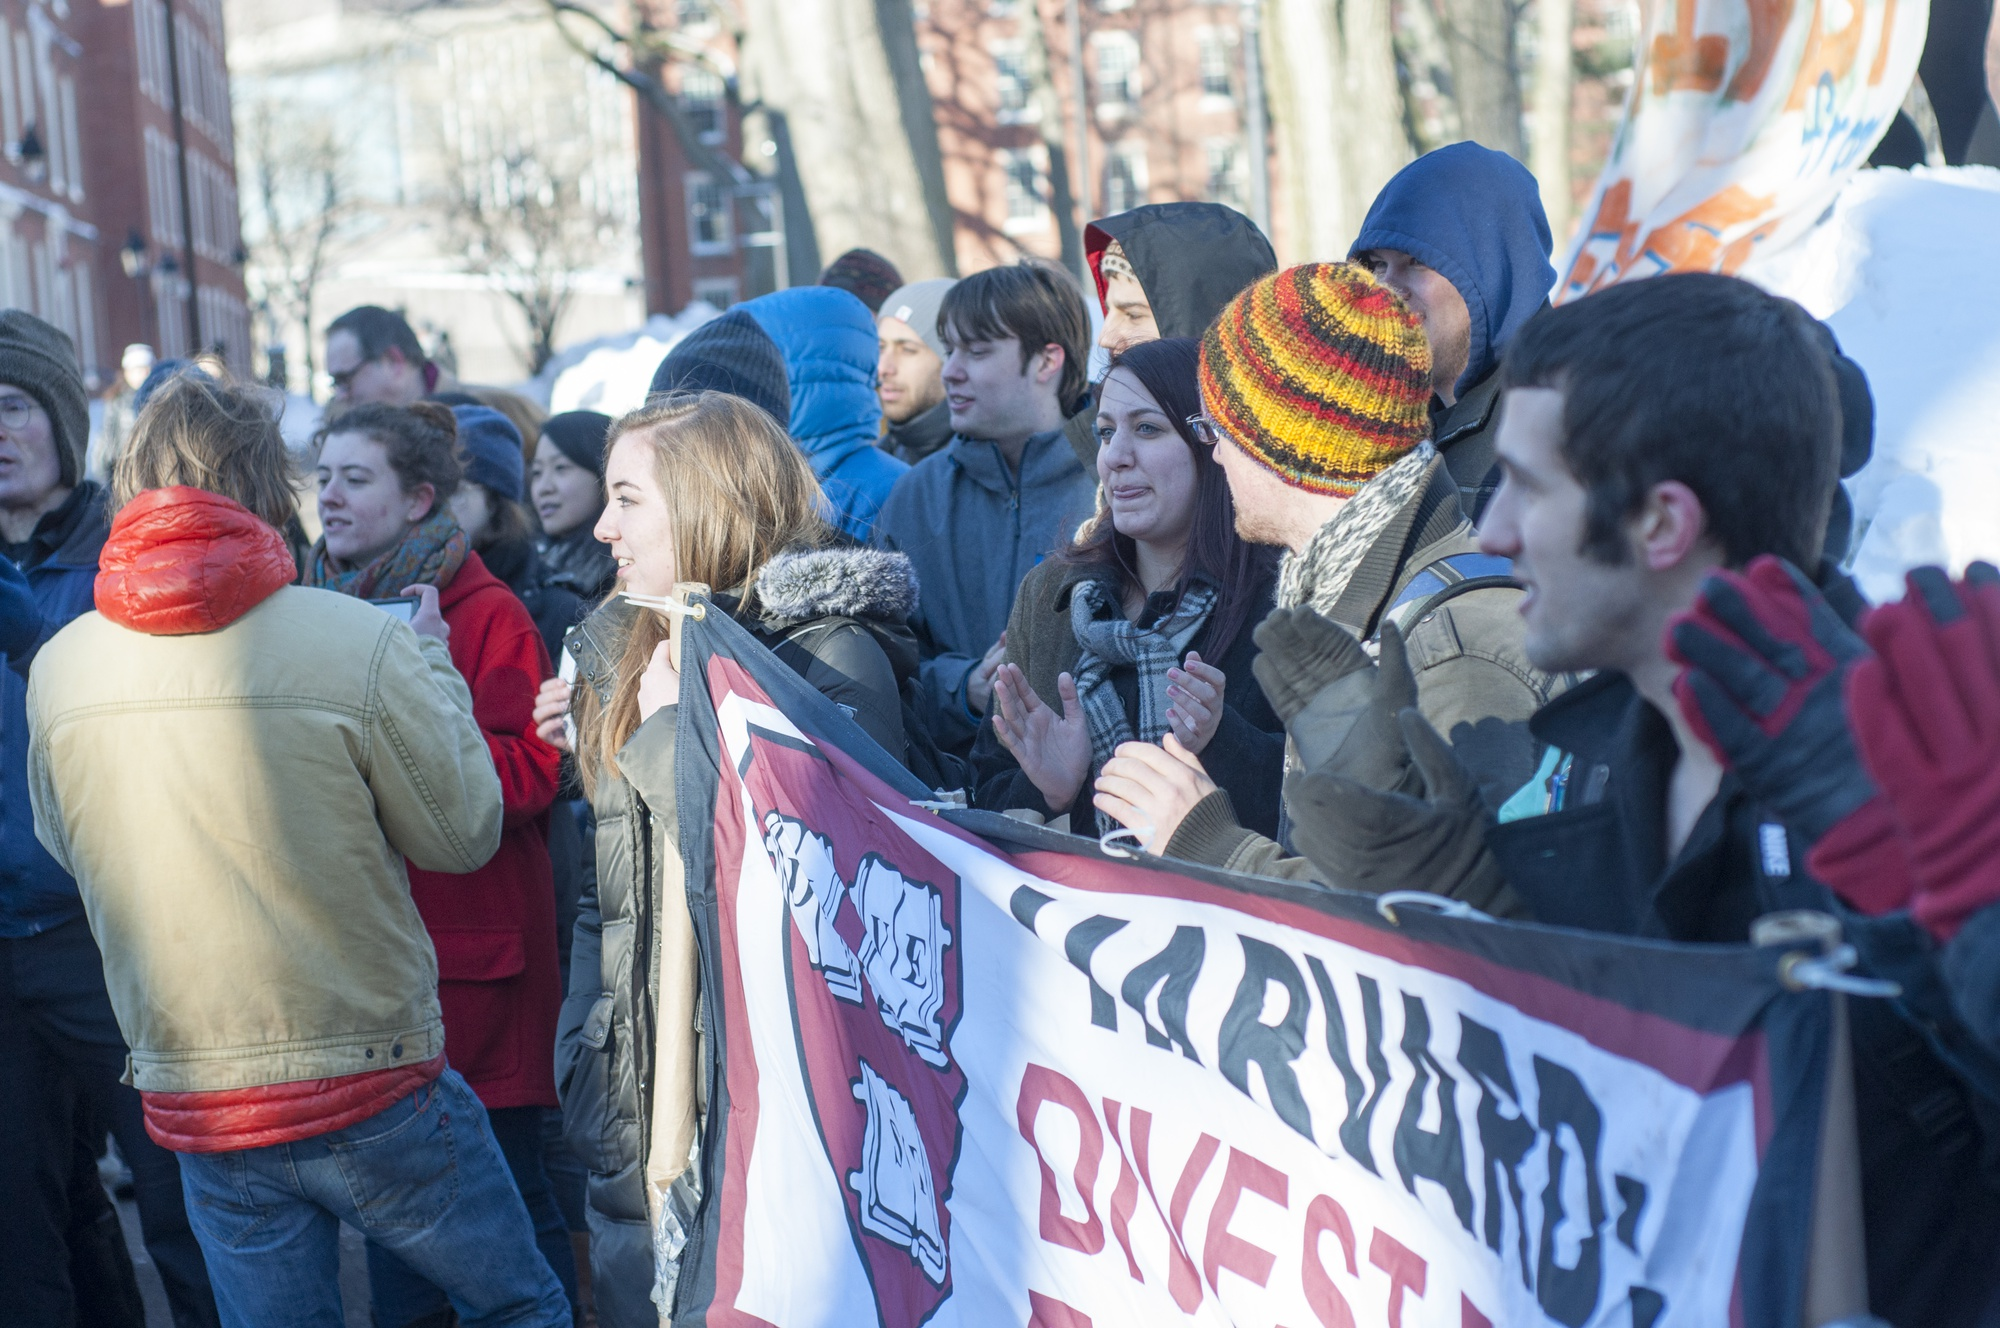 Divest Harvard students held a sign outside Massachusetts Hall on Friday, Feb. 13 as part of Global Divestment Day.